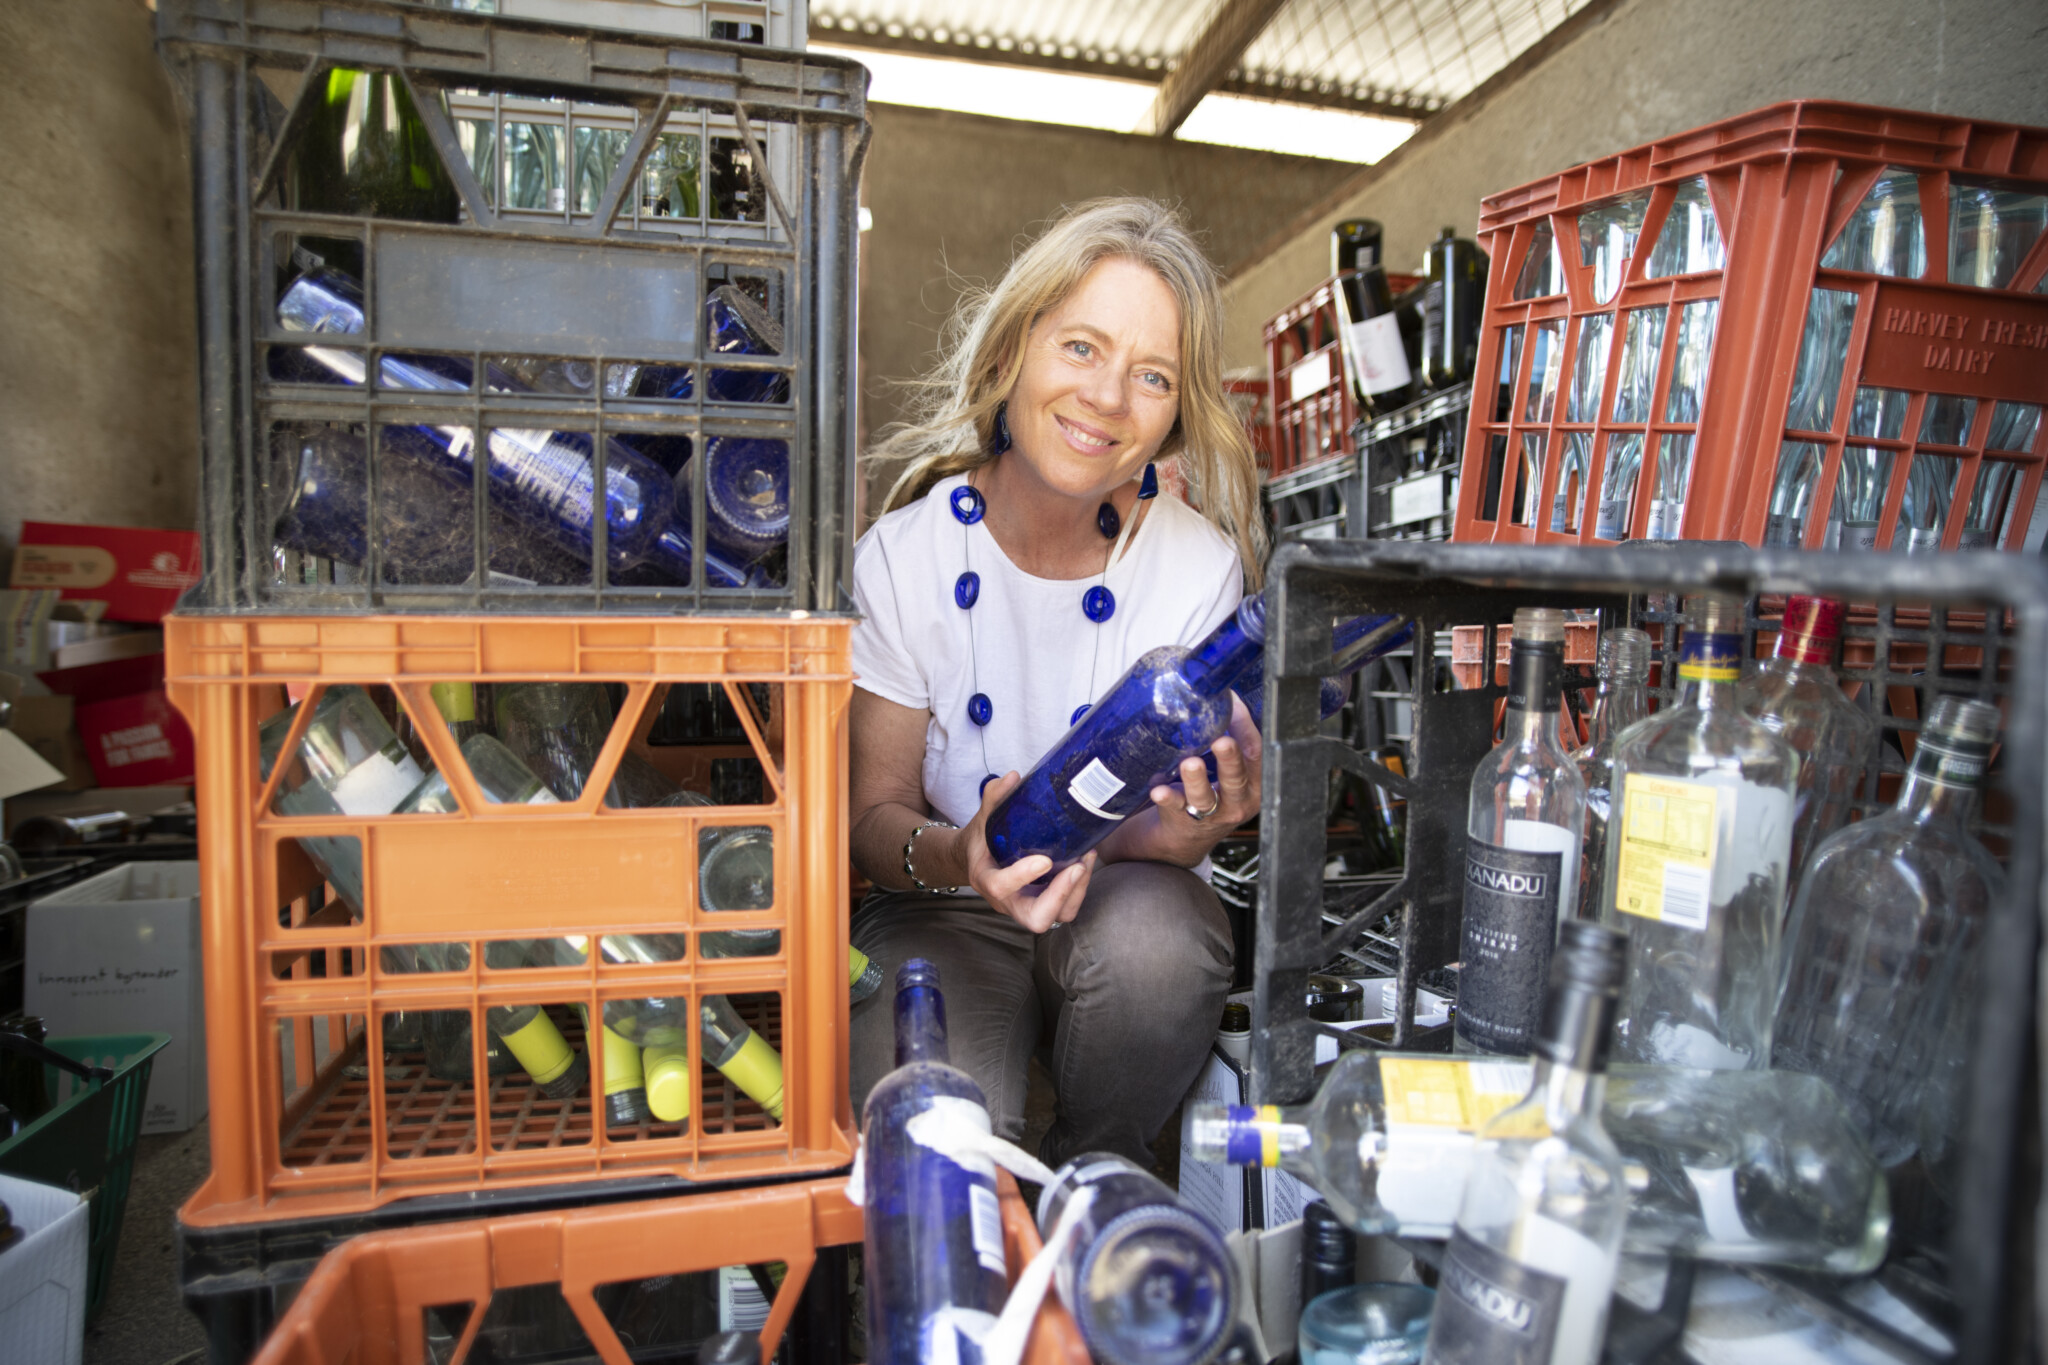 Cindy holding an empty bottle, surrounded by crates of empty bottles.